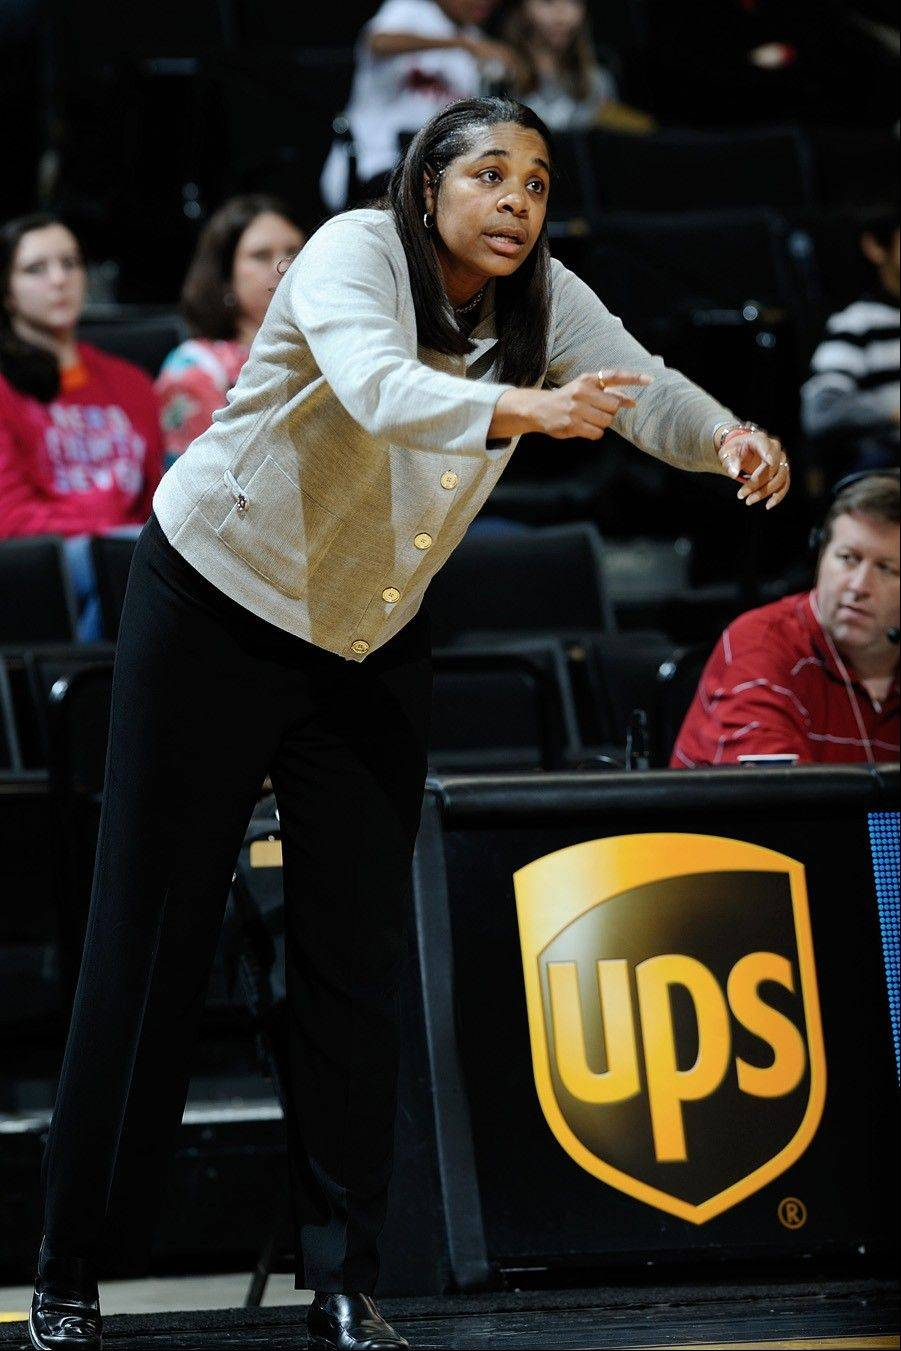 After 14 wins in her first year as Davidson's head coach, former NU basketball star Michele Savage led her team to a conference title and NIT berth with 22 wins in her second year at the helm.